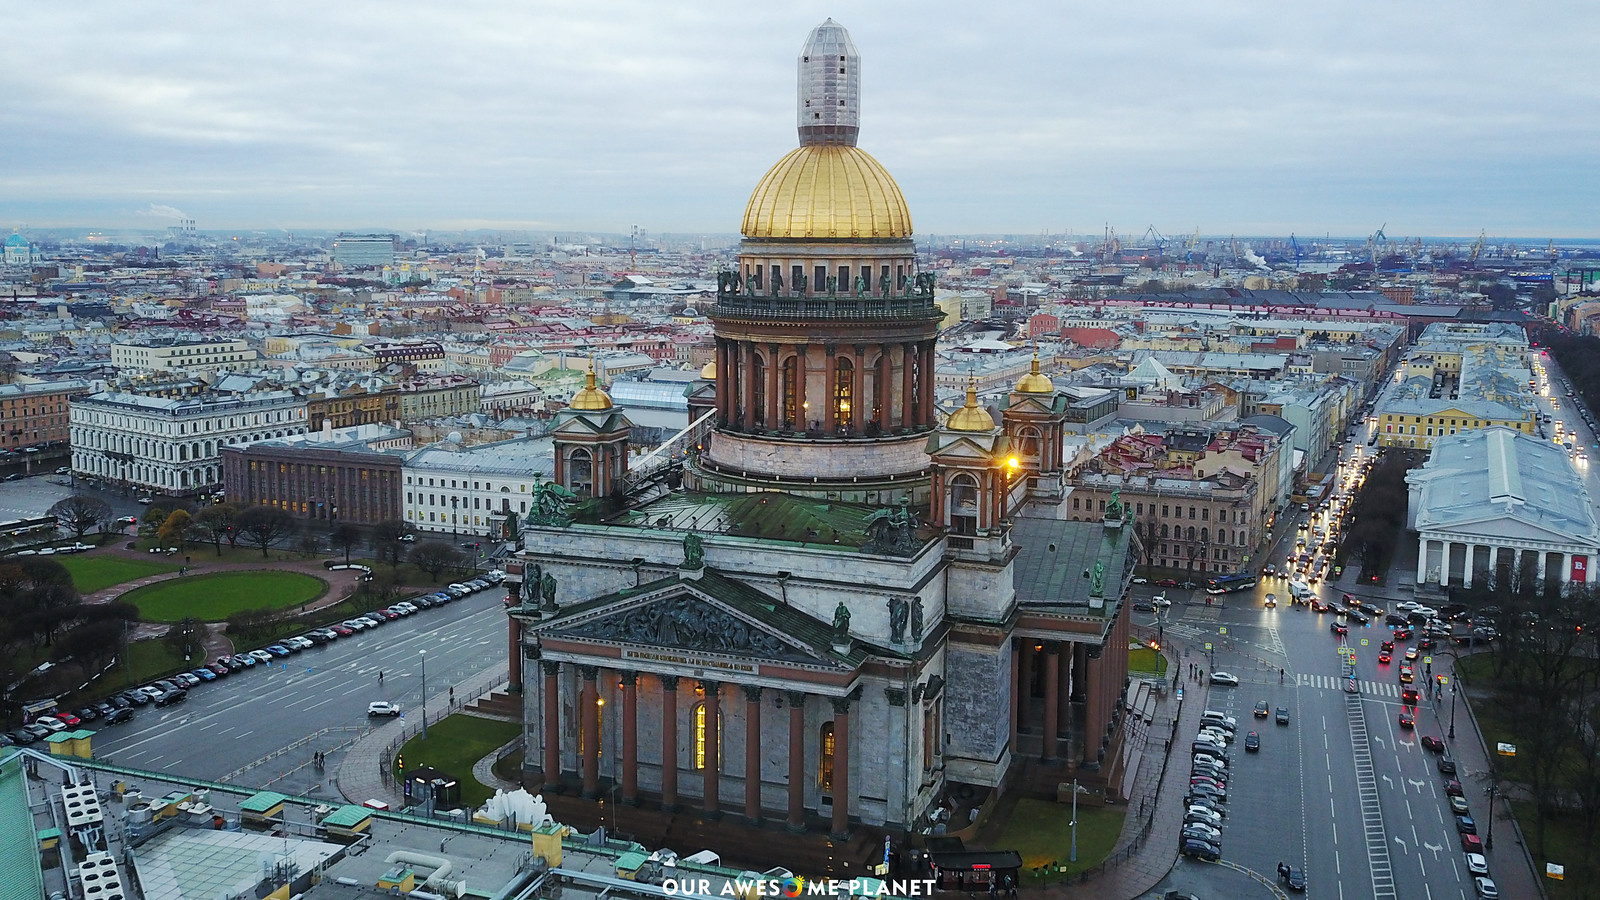 ST. PETERSBURG: The Greatest City in Russia